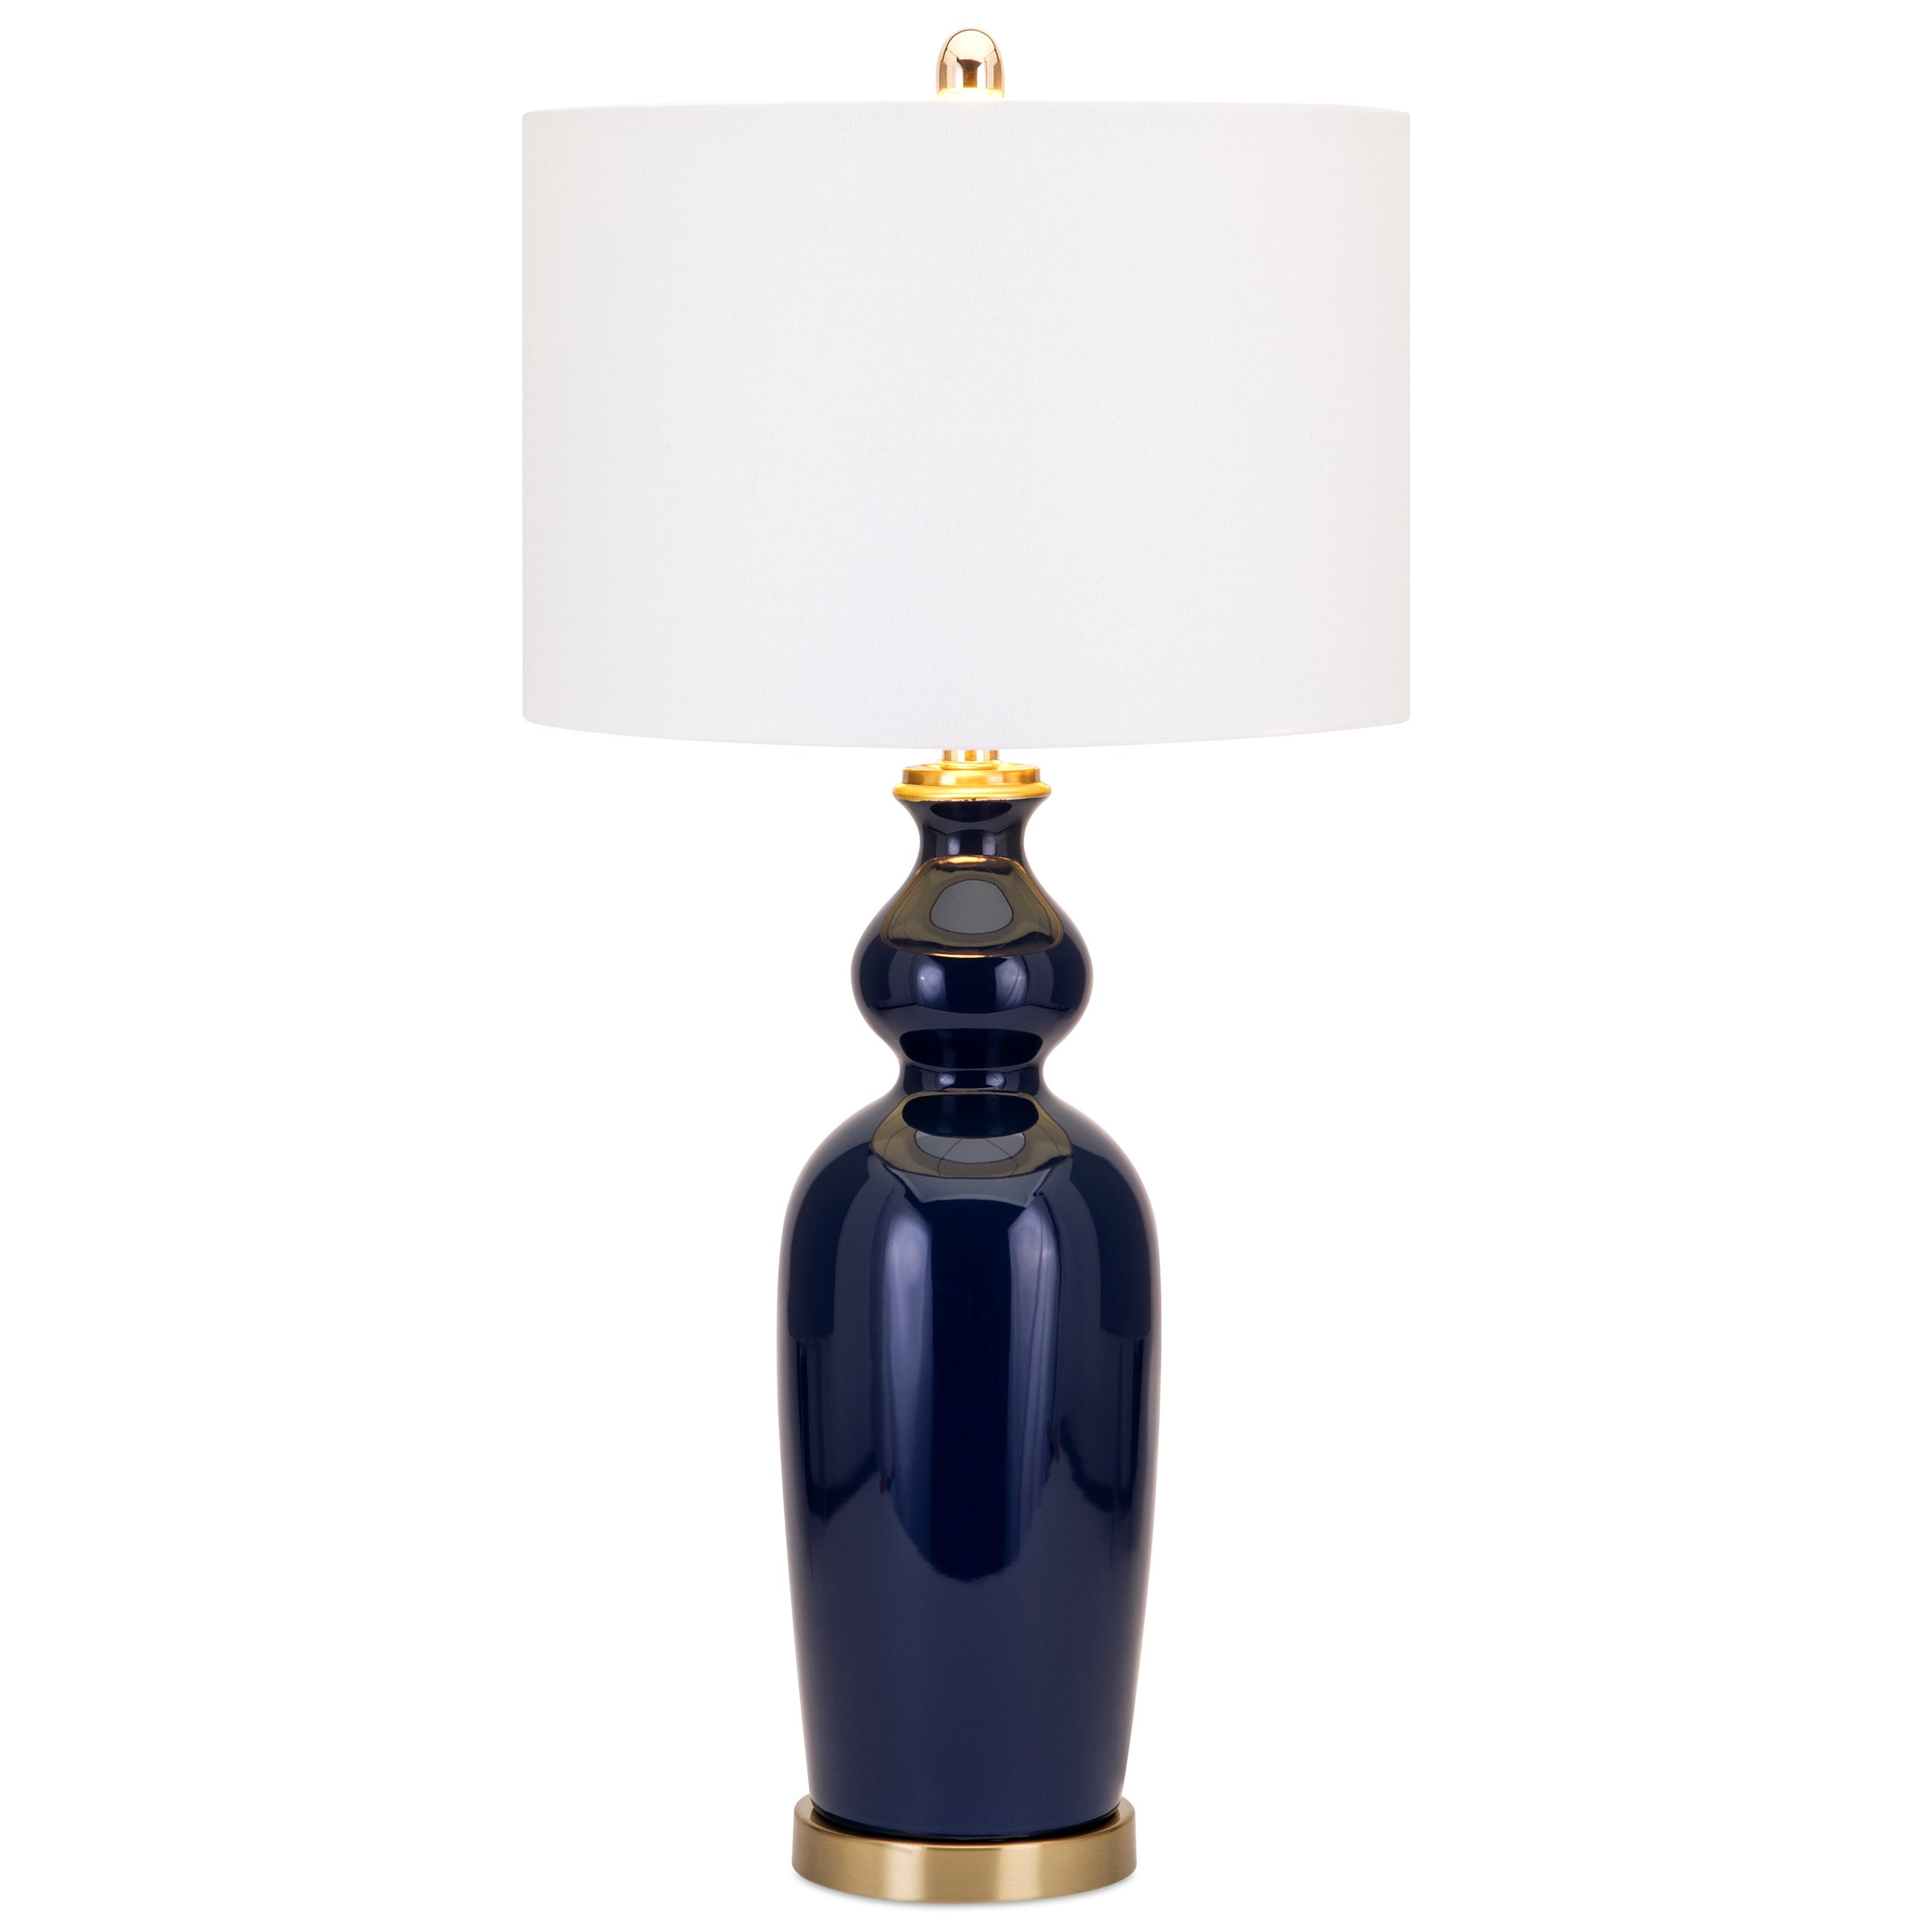 Becky Fletcher Farzin Table Lamp by IMAX Worldwide Home at Alison Craig Home Furnishings